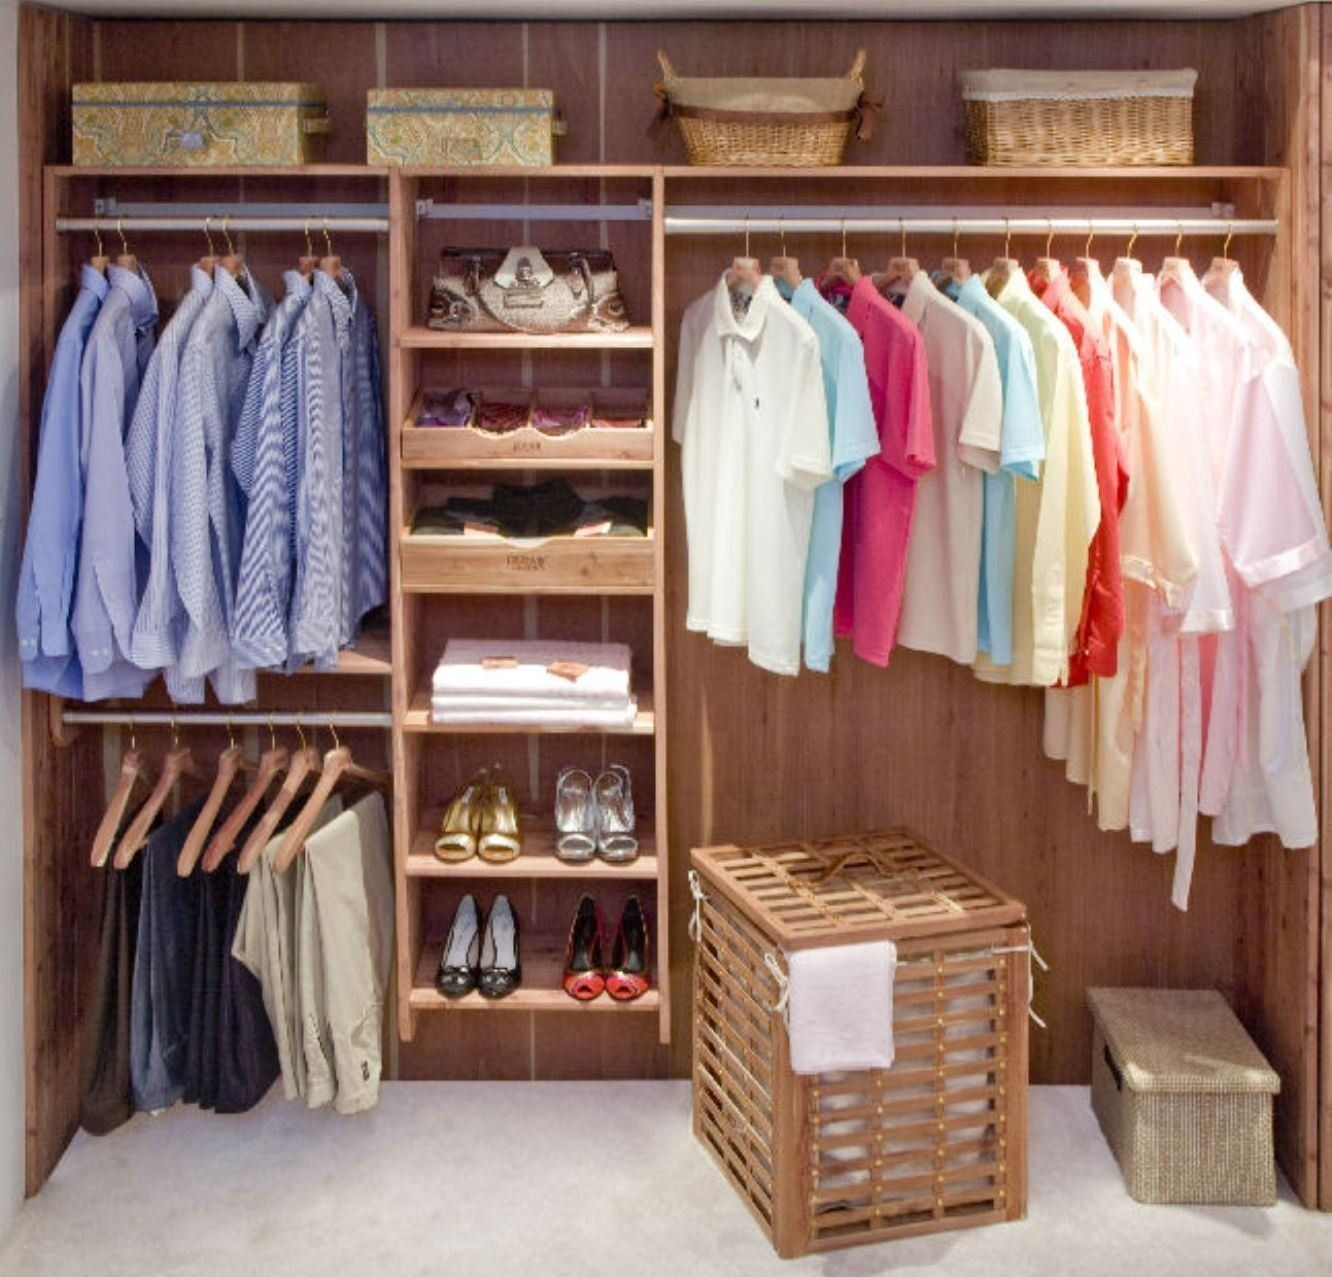 closet repels handyman aromatic llc as installation blog eastern aroma from cedar plan gives an the moths red juniper orig comes repair otherwise closets off that it known